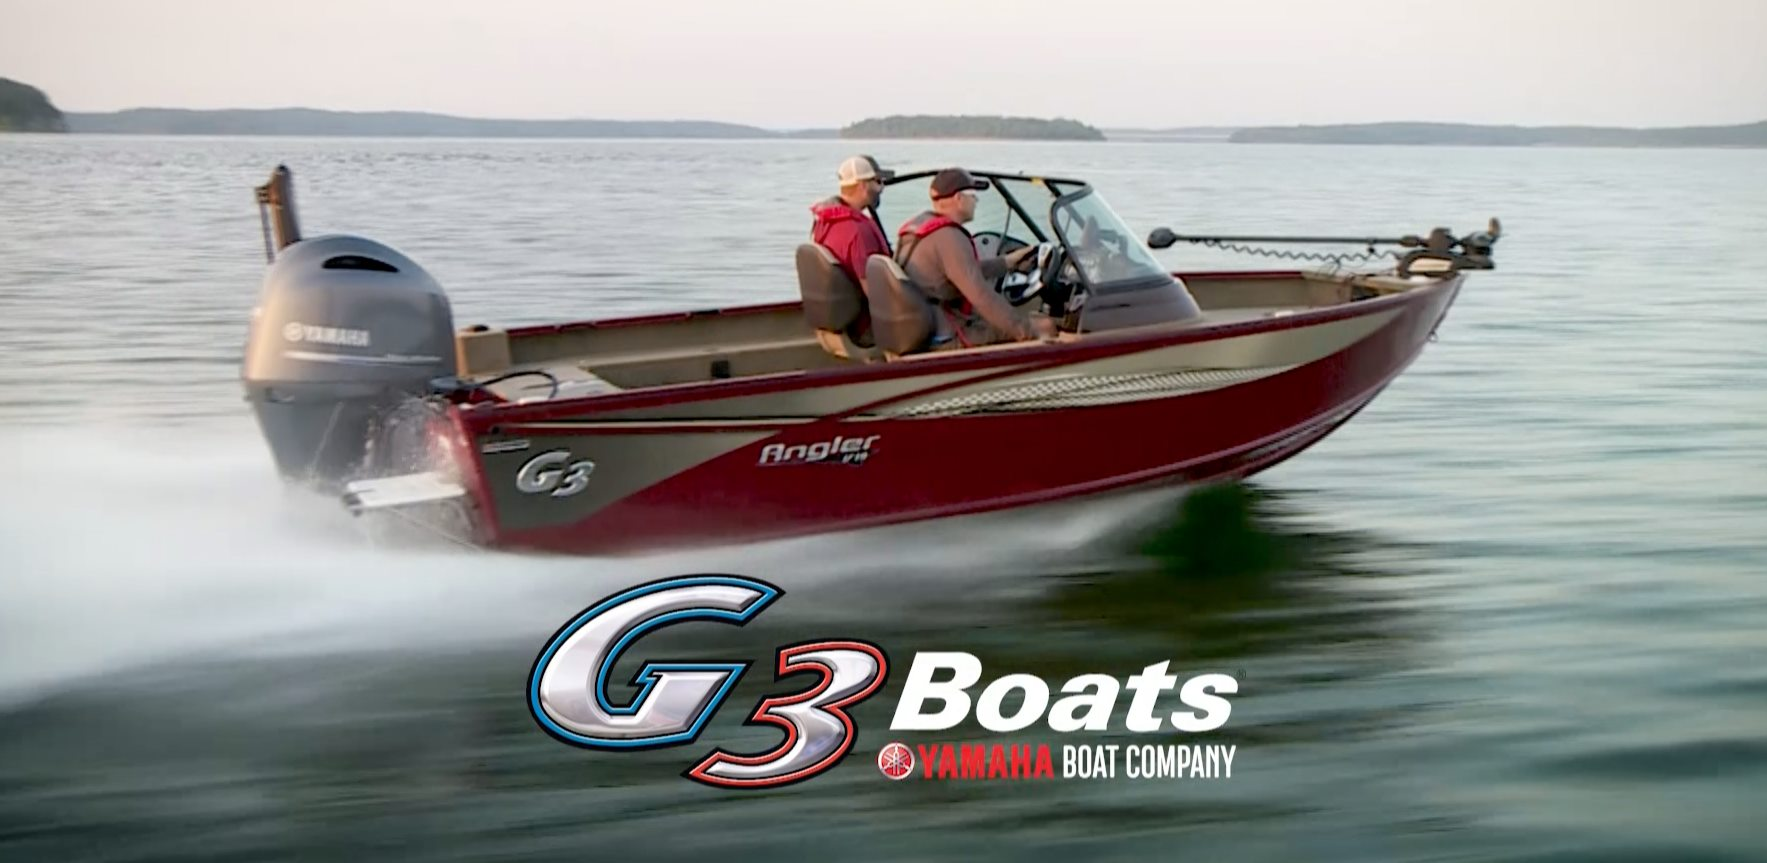 G3 is proud to be Yamaha Boat Company for over 20 years.  Every Angler Deep V series boat is built with the same great quality as Yamaha has earned as the industry leader. #G3life #yamahaoutboards #G3boats #lowrance #minnkota #powerpole #G3sportsman